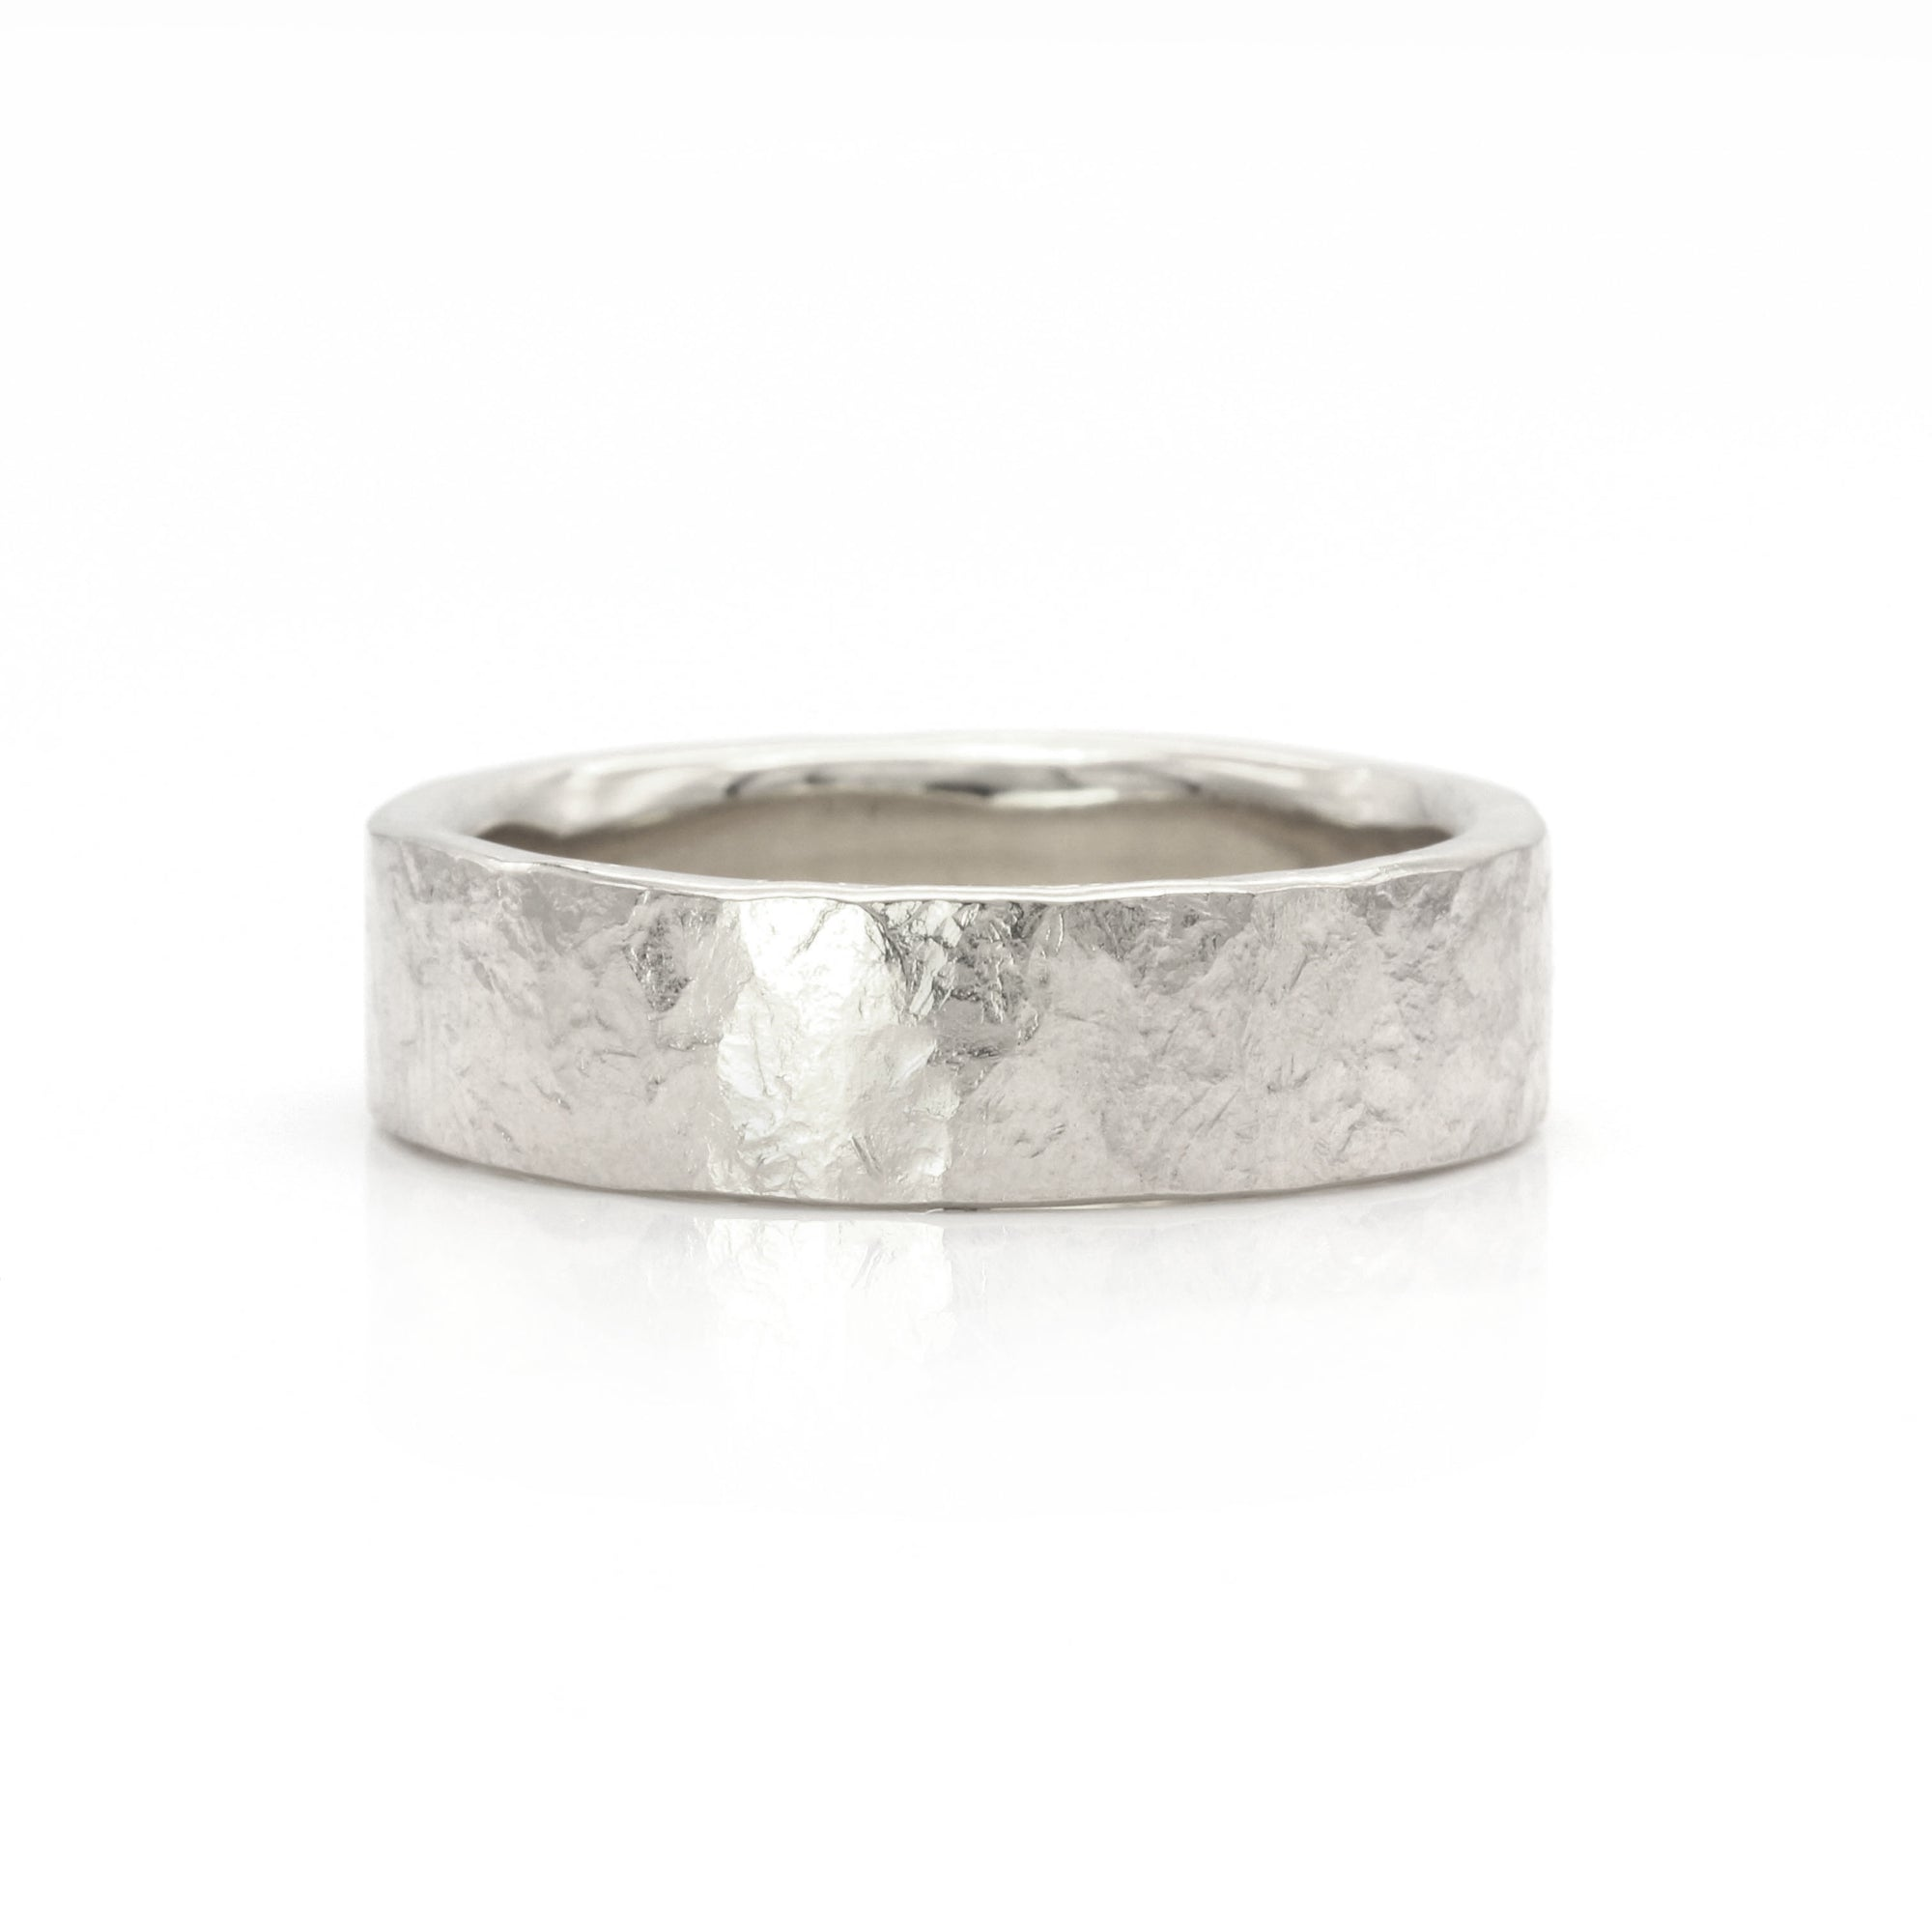 Organic Silk Textured Band | 6mm Wide | Palladium White Gold, Platinum